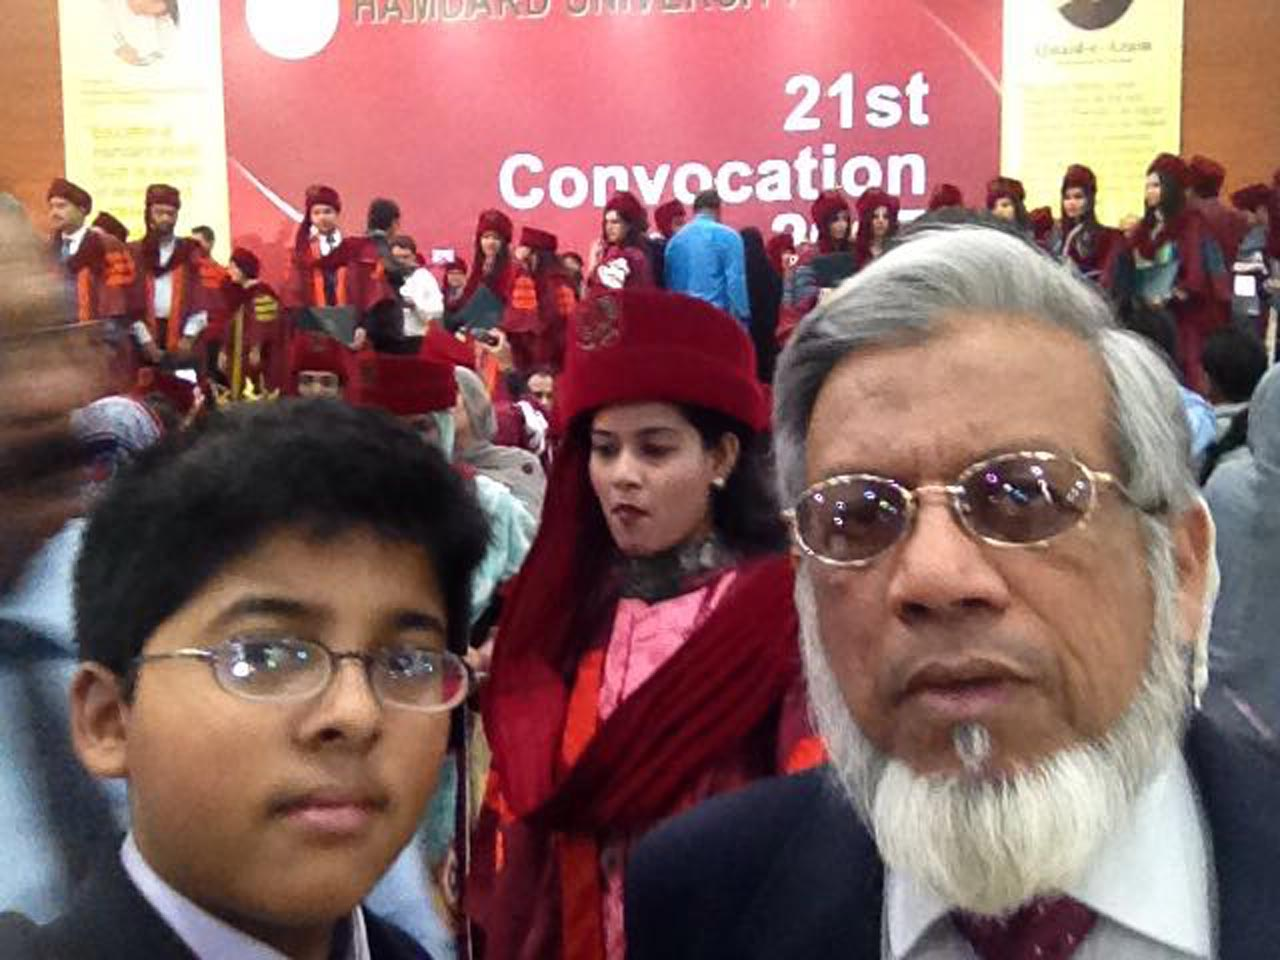 Habib Ur Rehman and Engr. Iqbal A. Khan in the Convocation Hall